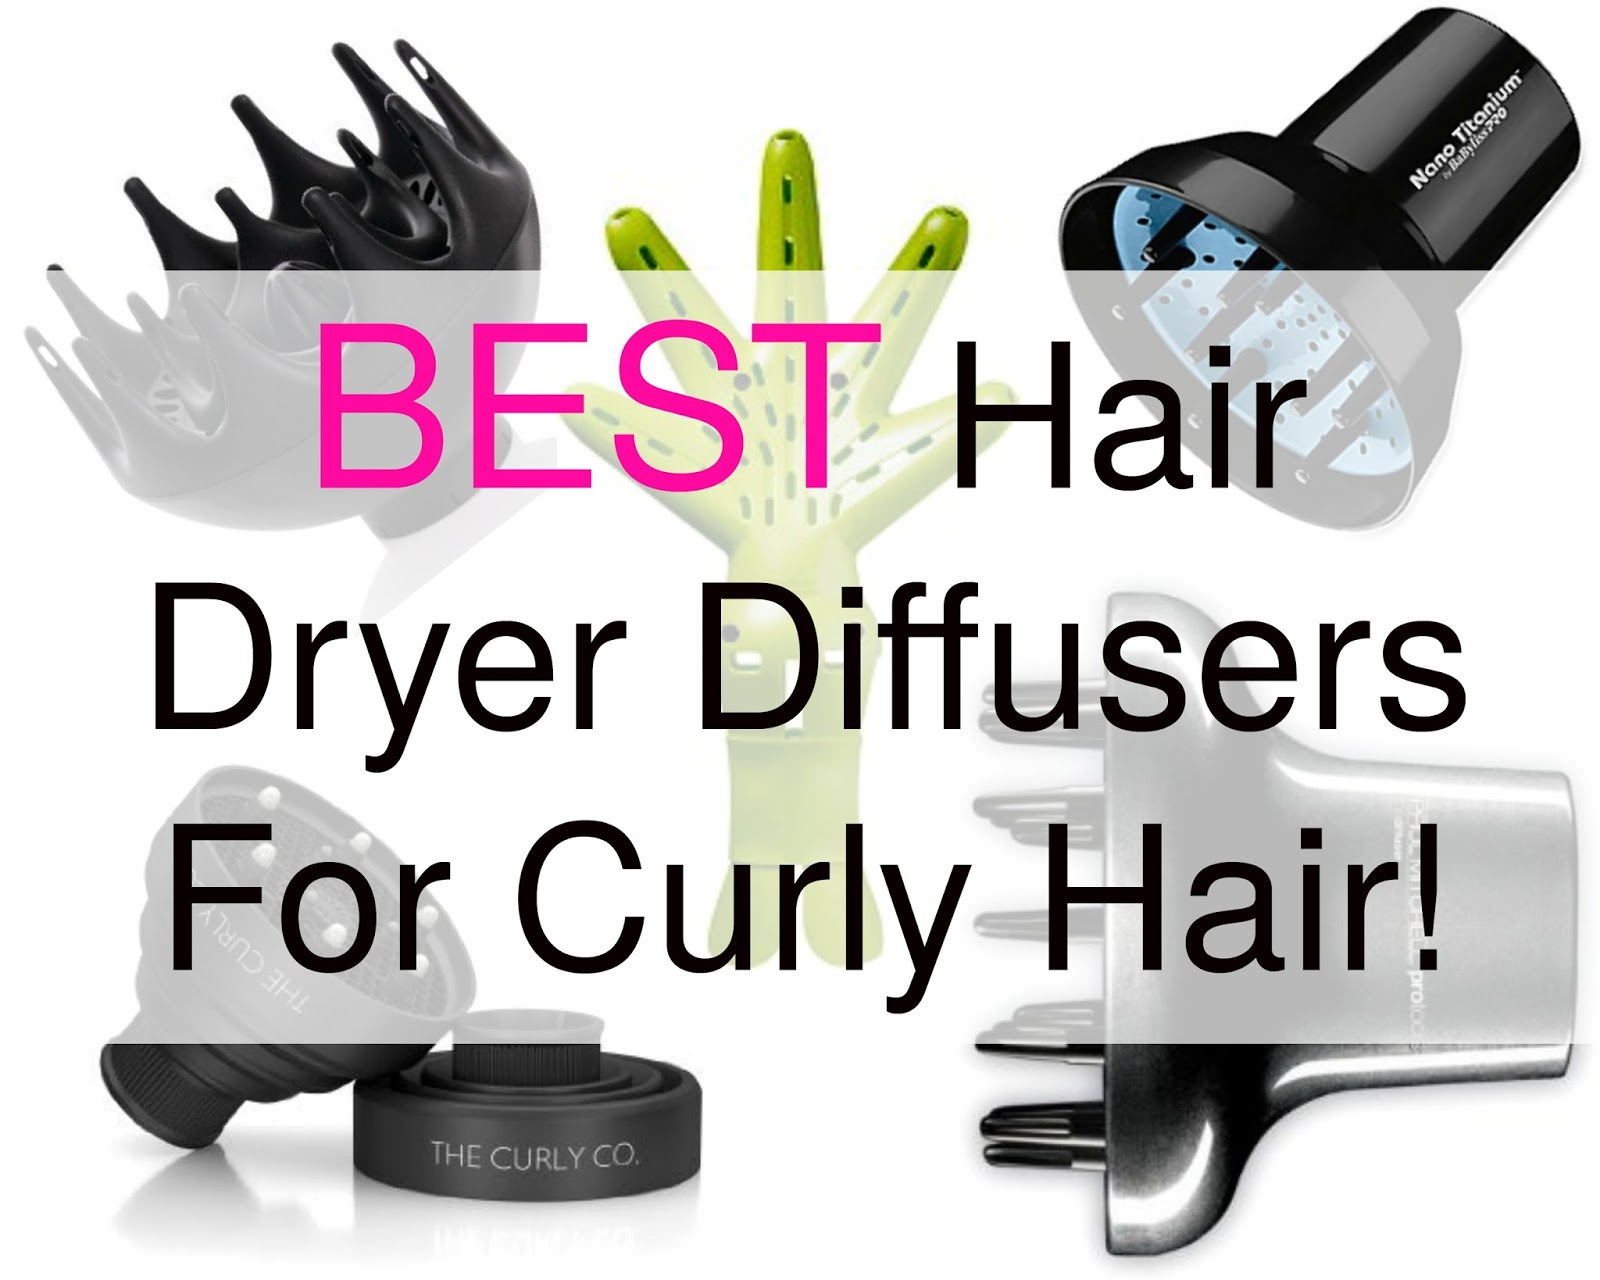 Hair Diffuser for curly, coily and kinky hair is important. Your hair dryer needs the right diffuser to keep hair frizz free, healthy and gorgeous!